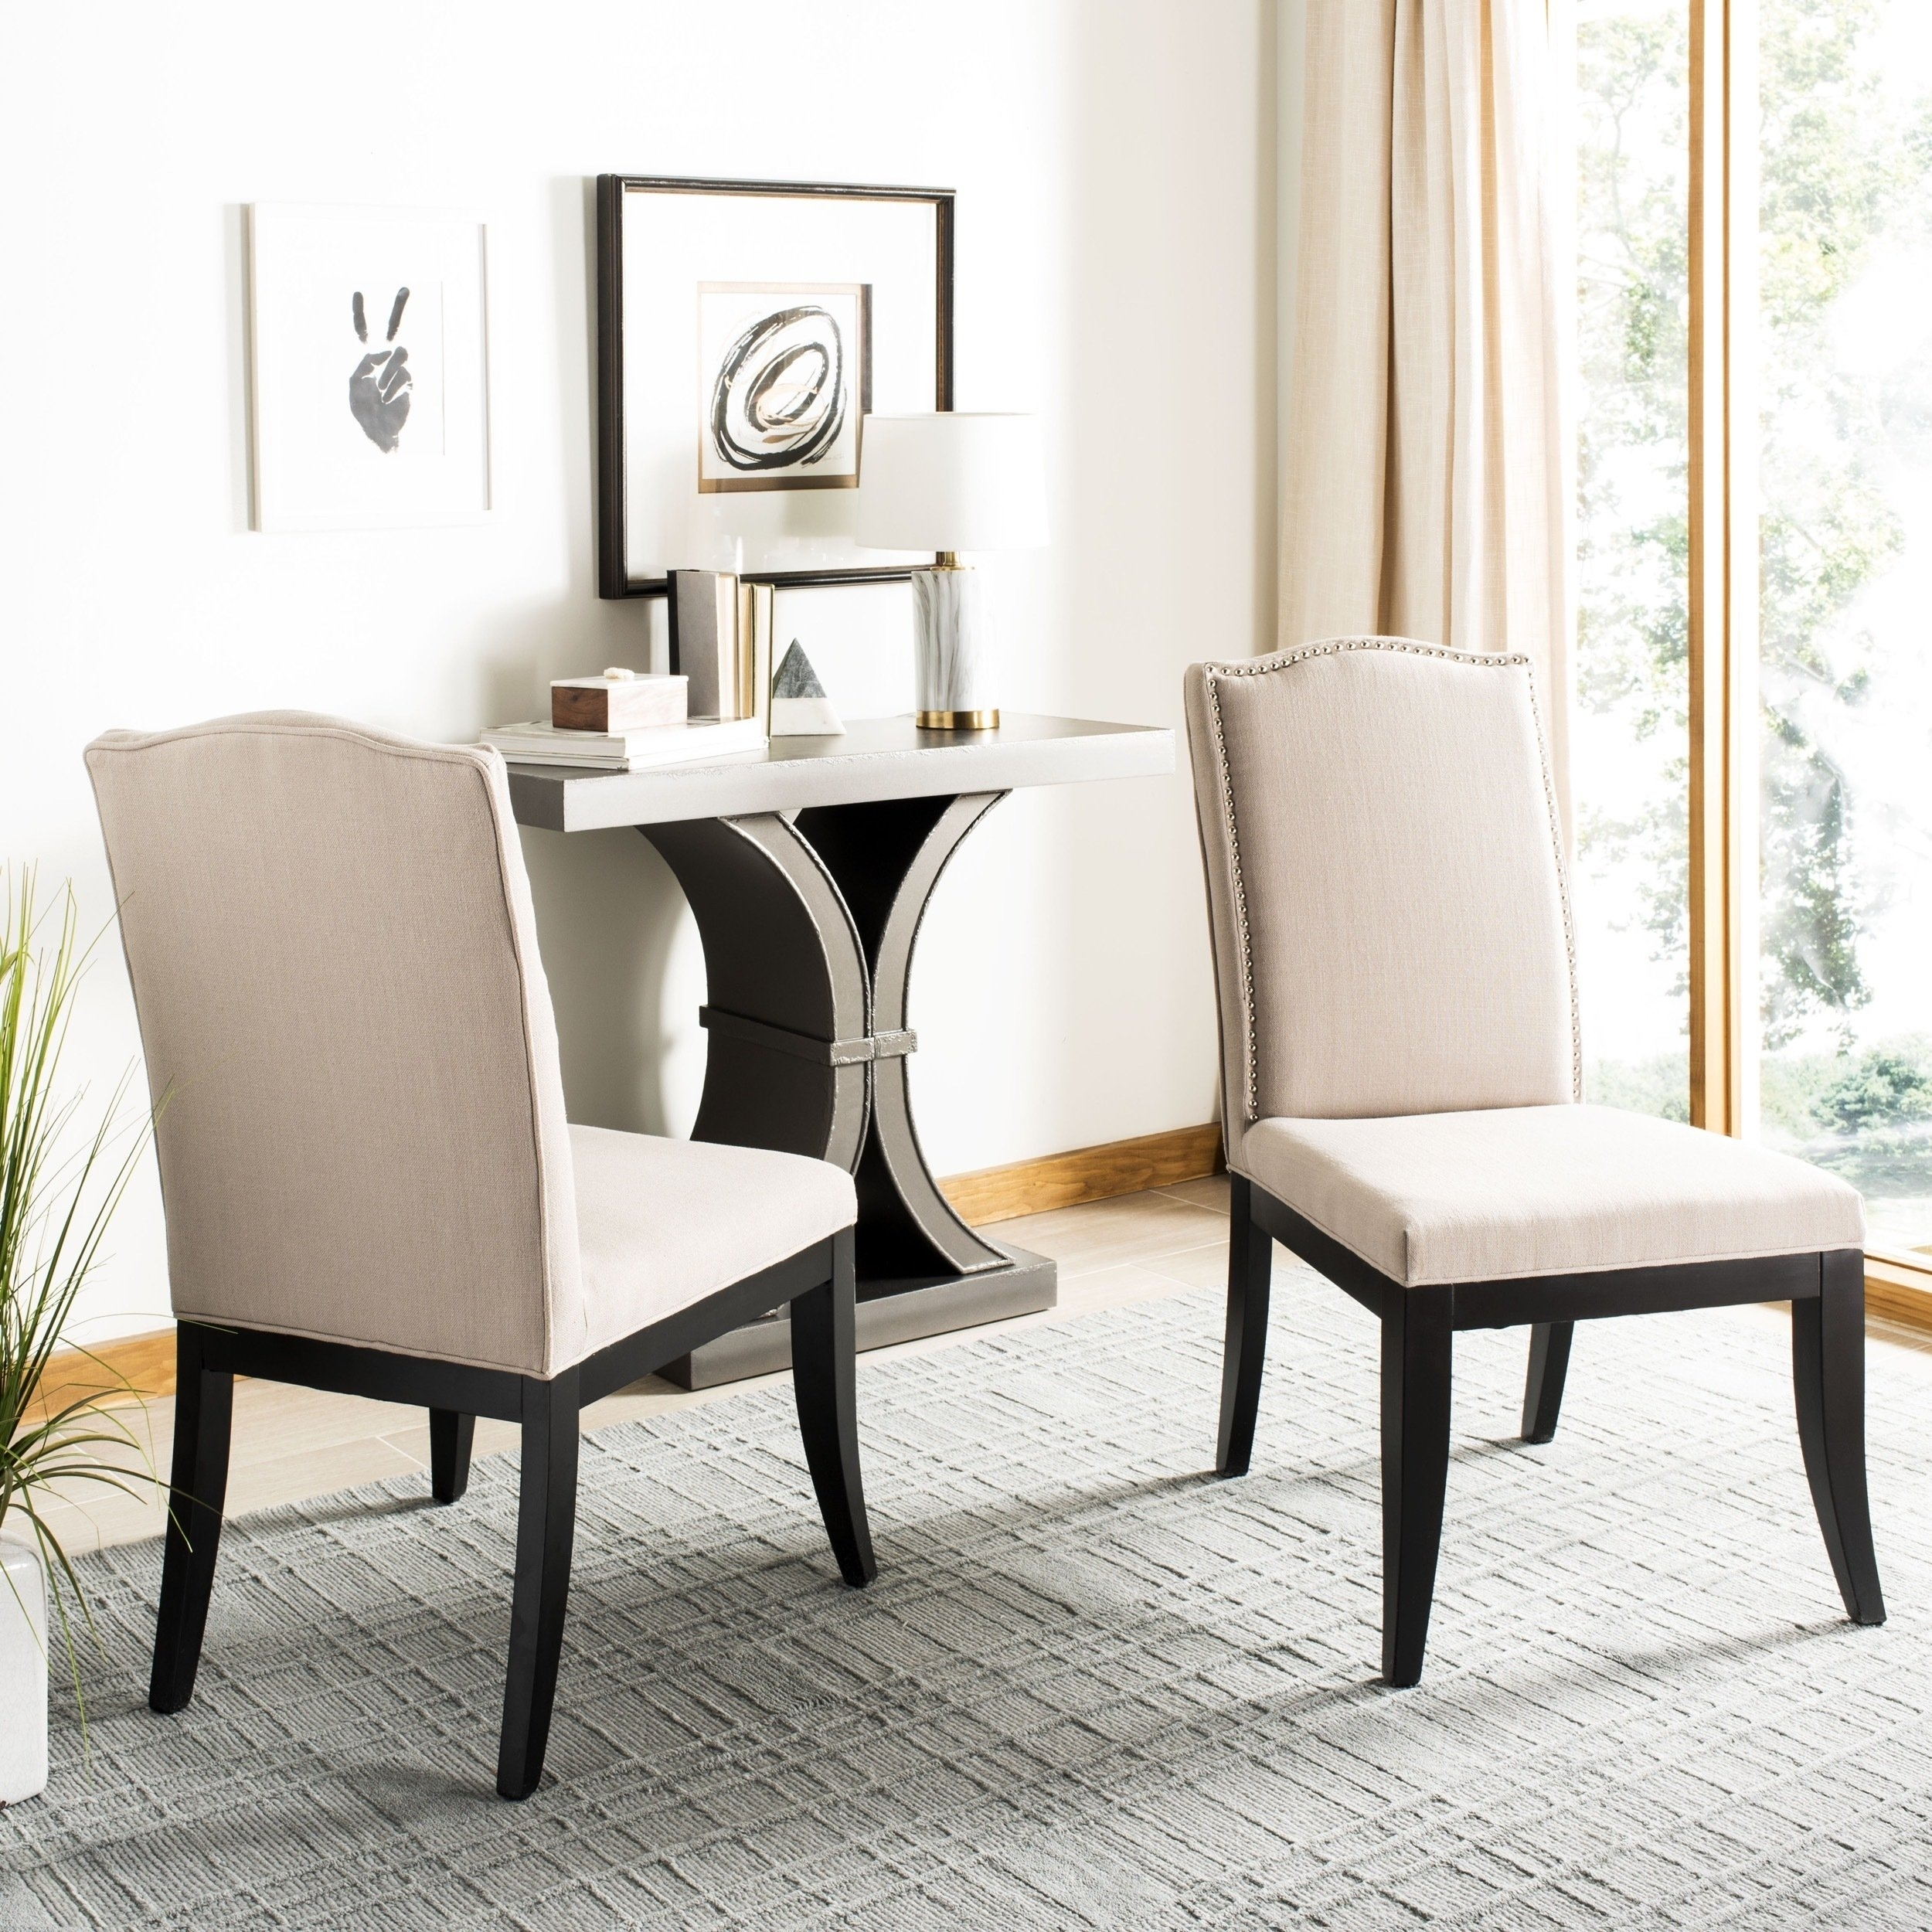 Safavieh En Vogue Dining Laurent Taupe Nailhead Dining Chairs (Set With Regard To Preferred Laurent Upholstered Side Chairs (View 17 of 20)